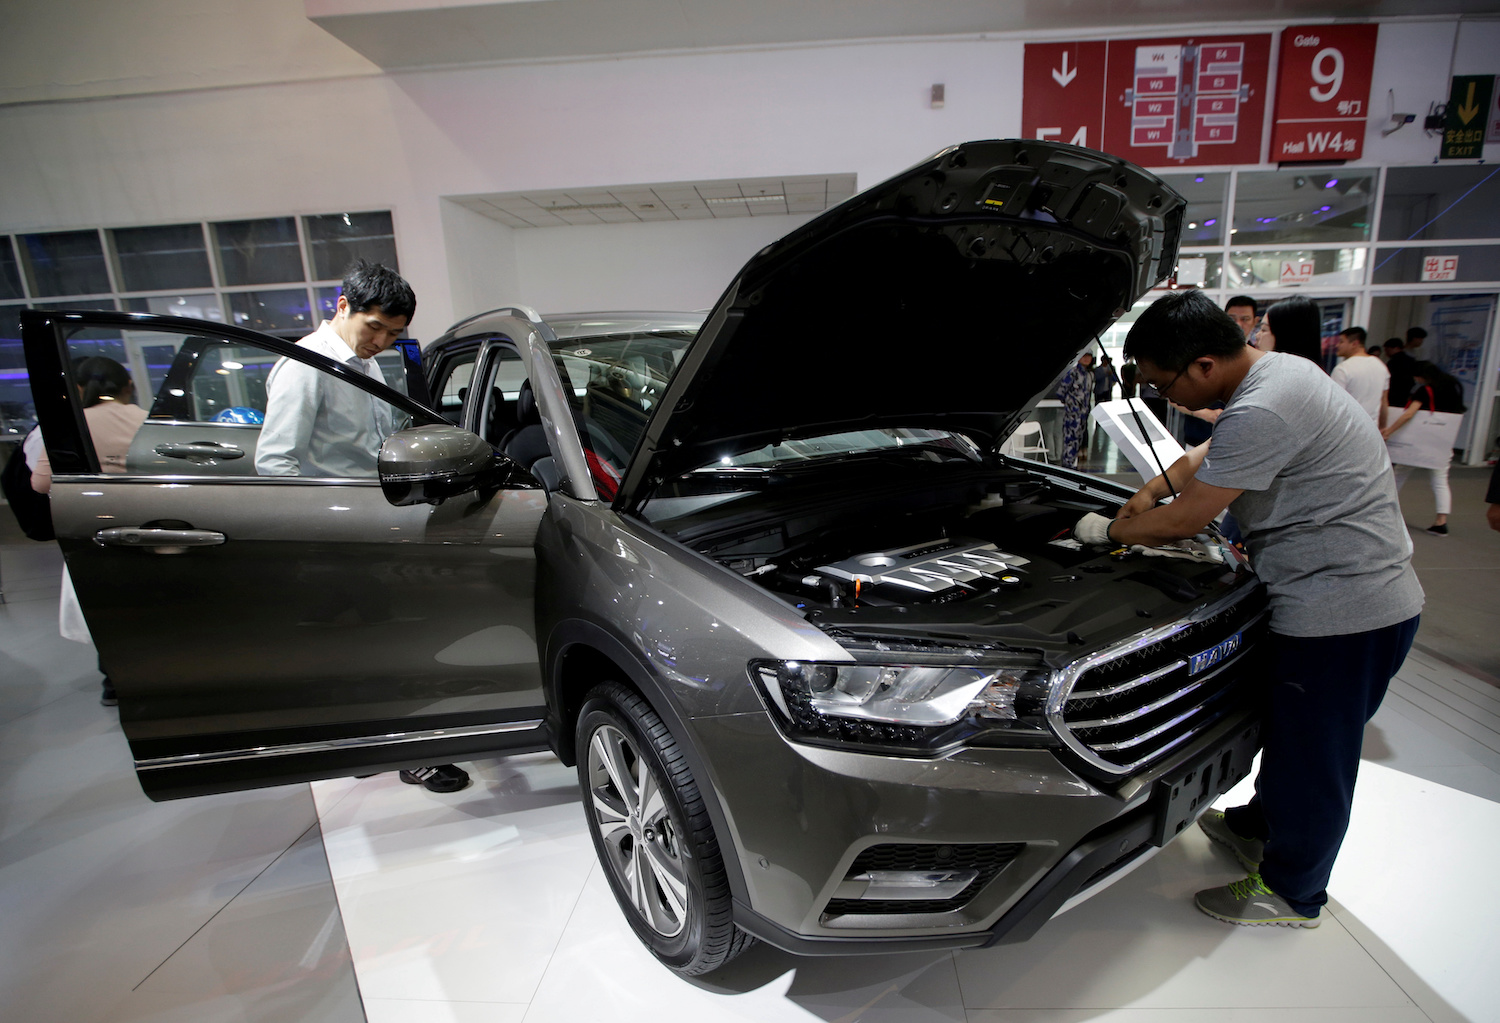 China's Great Wall plans to launch electric and smart car brand